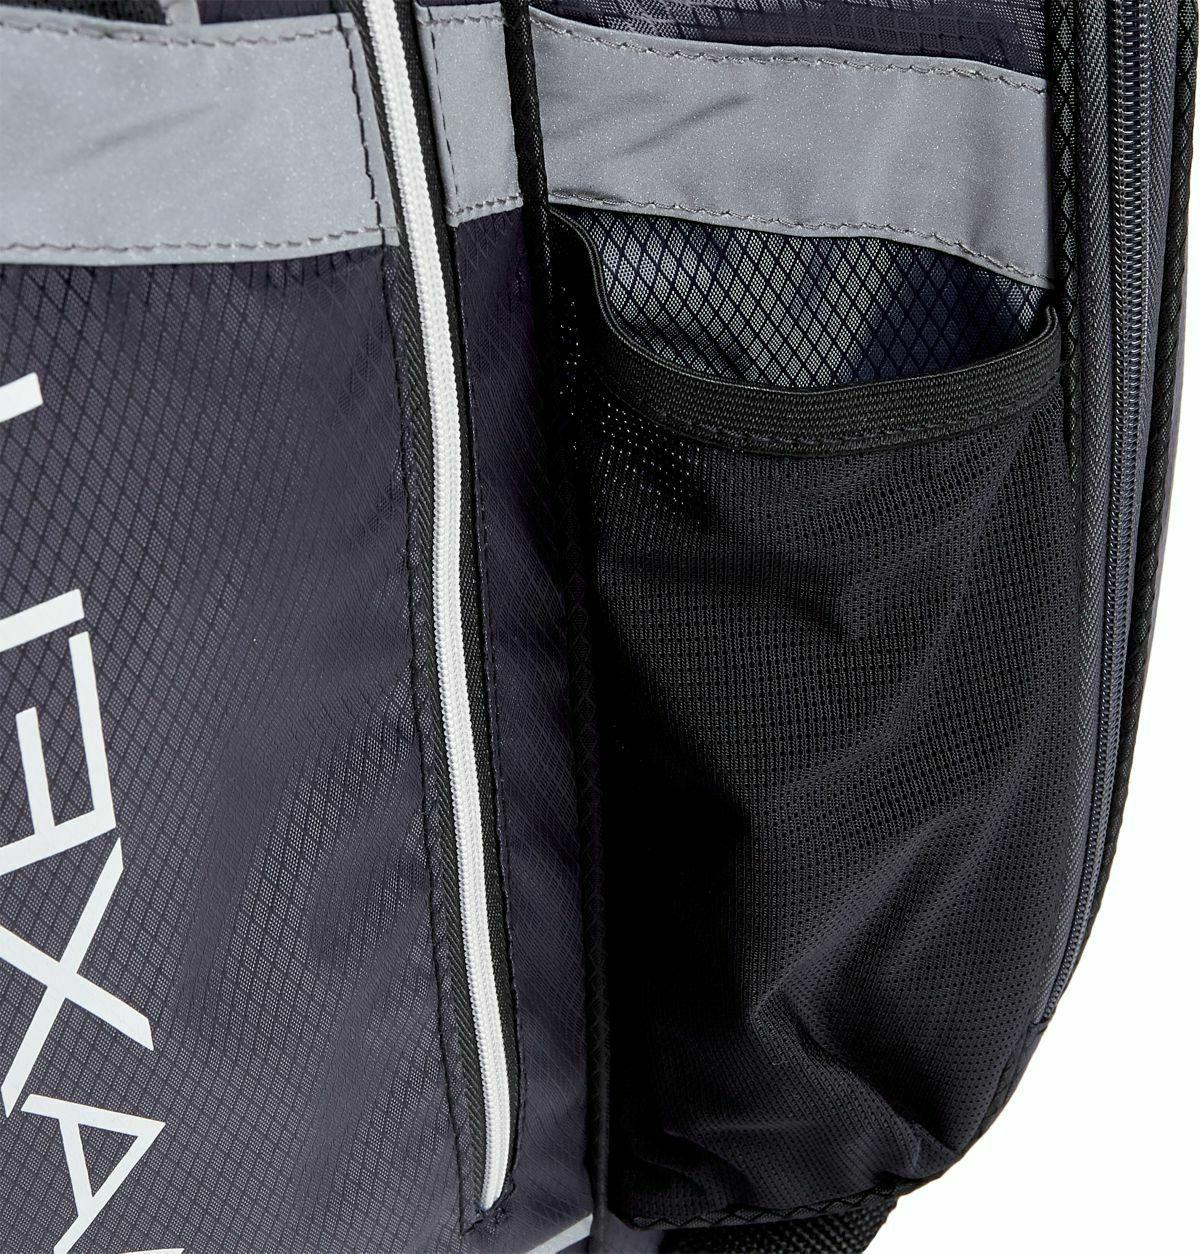 New Maxfli Honors Sunday Golf Bag Black